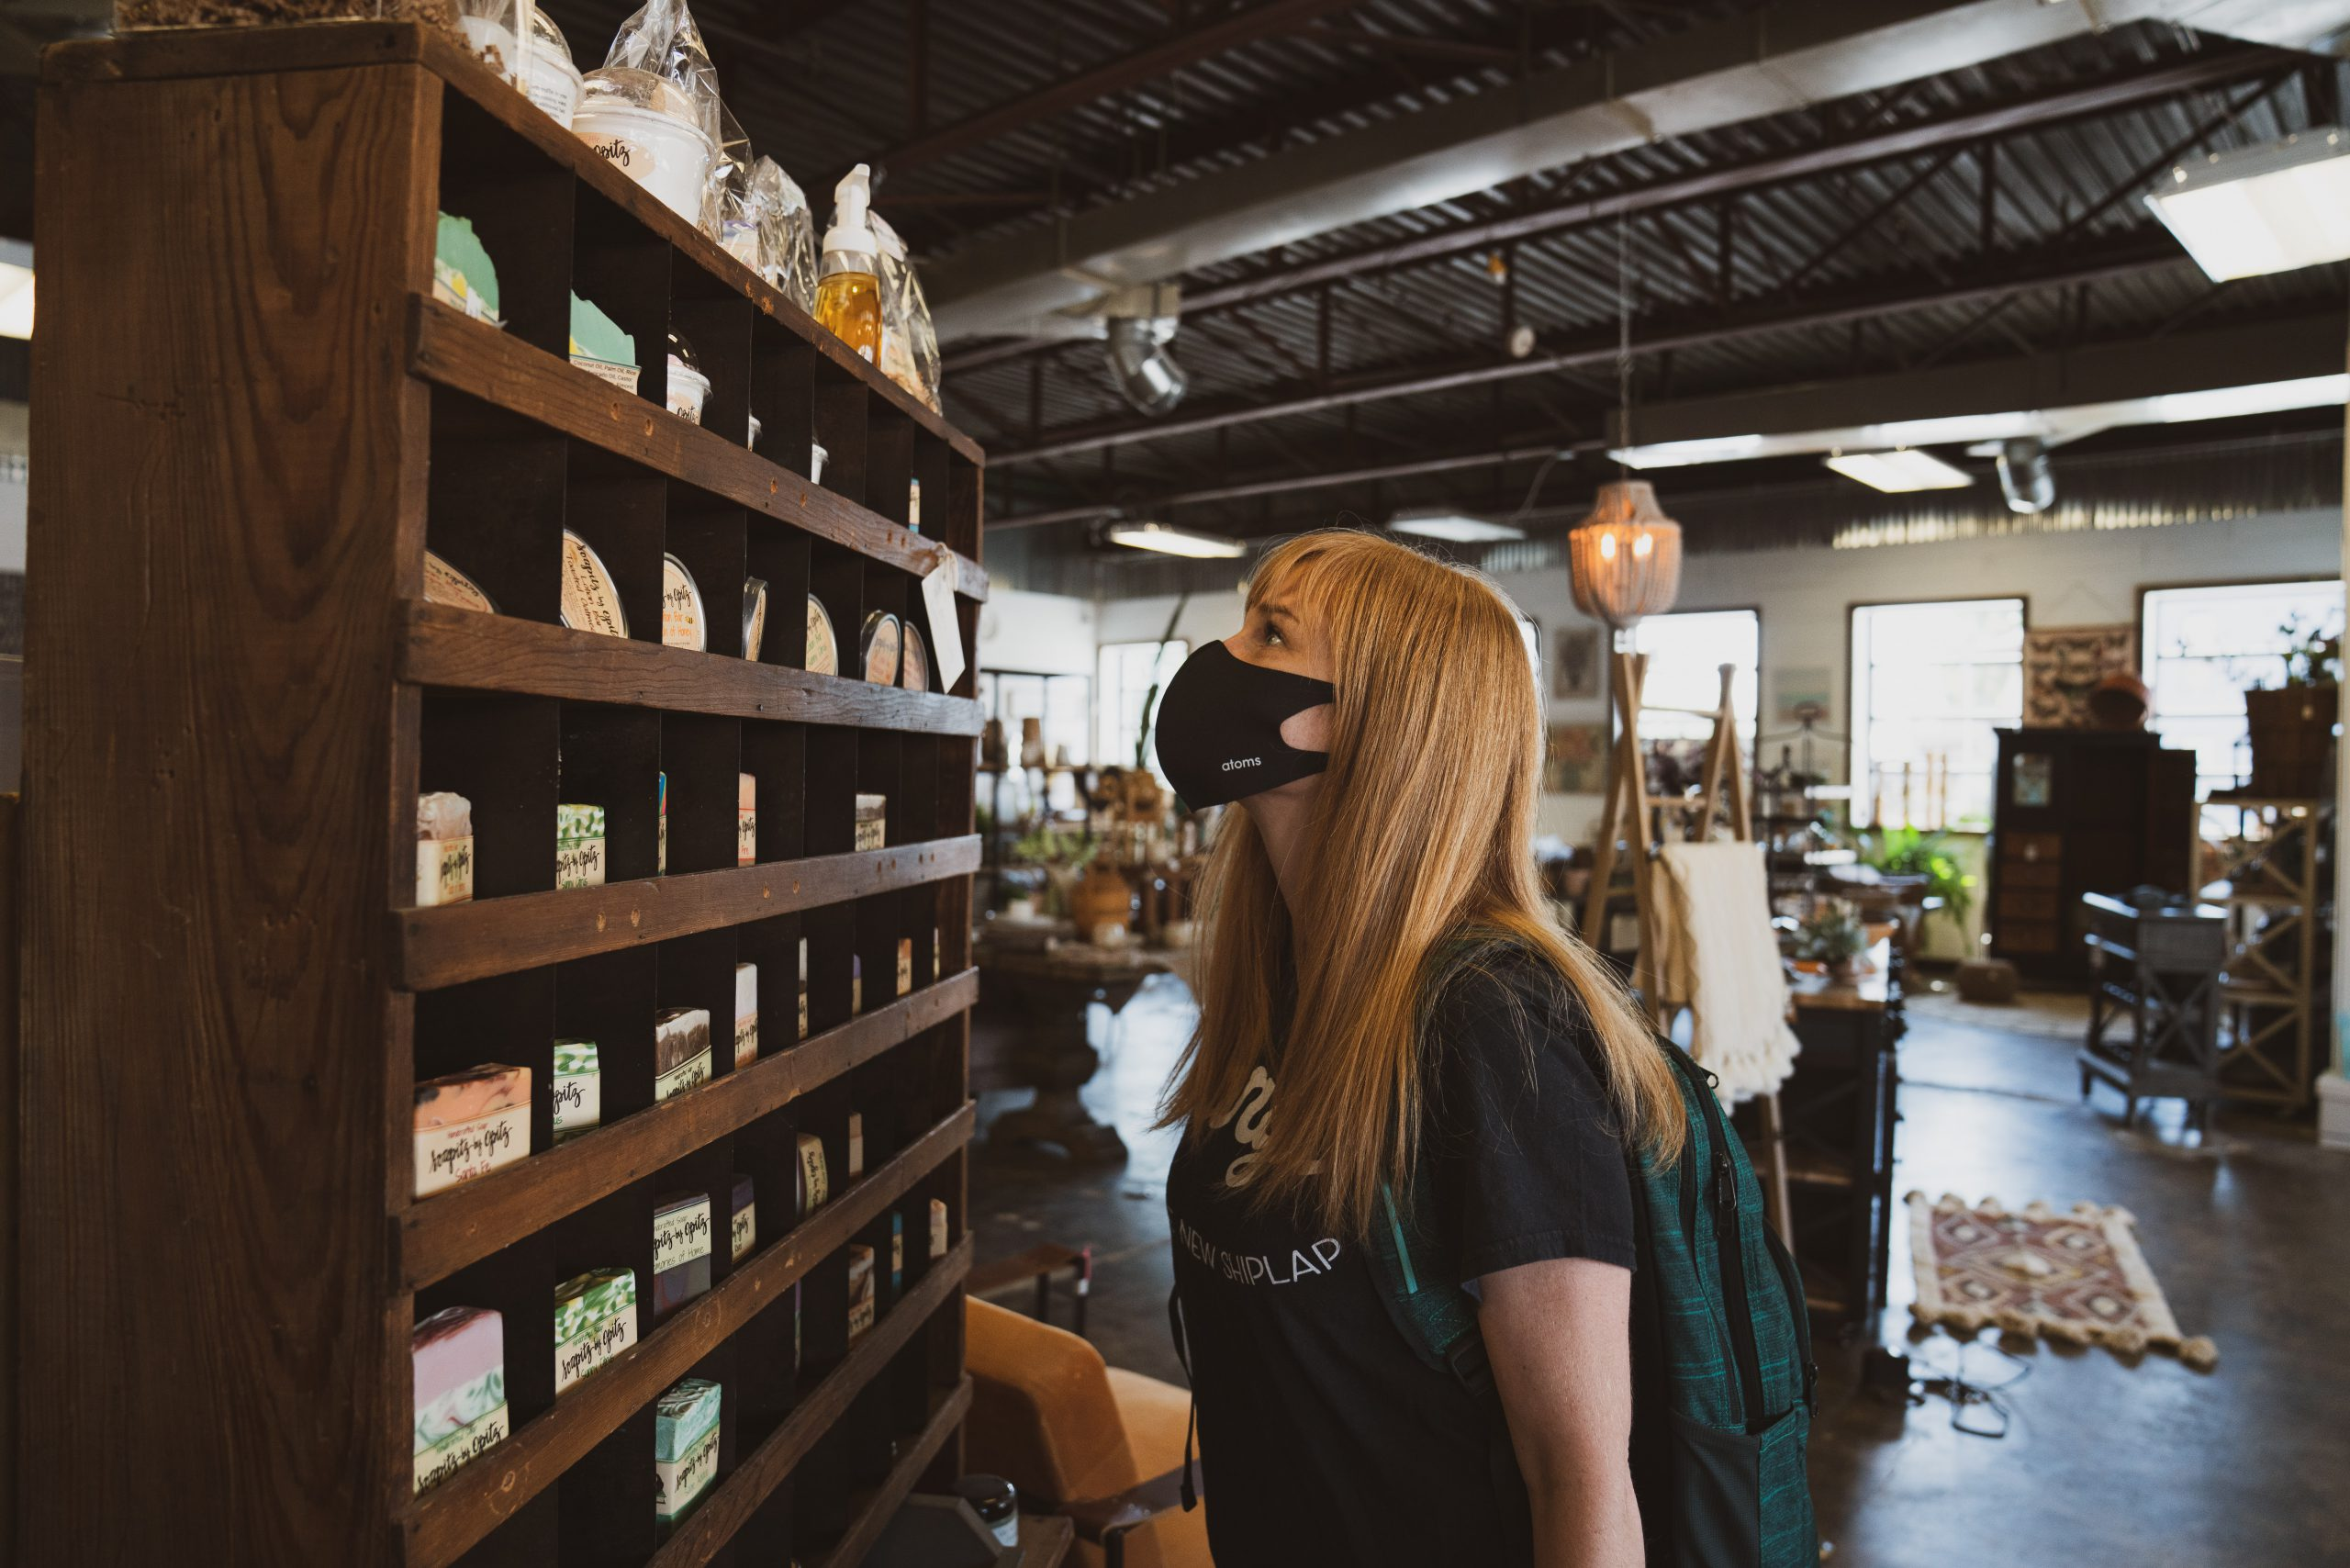 brick-and-mortar business owners implement new rules for customers